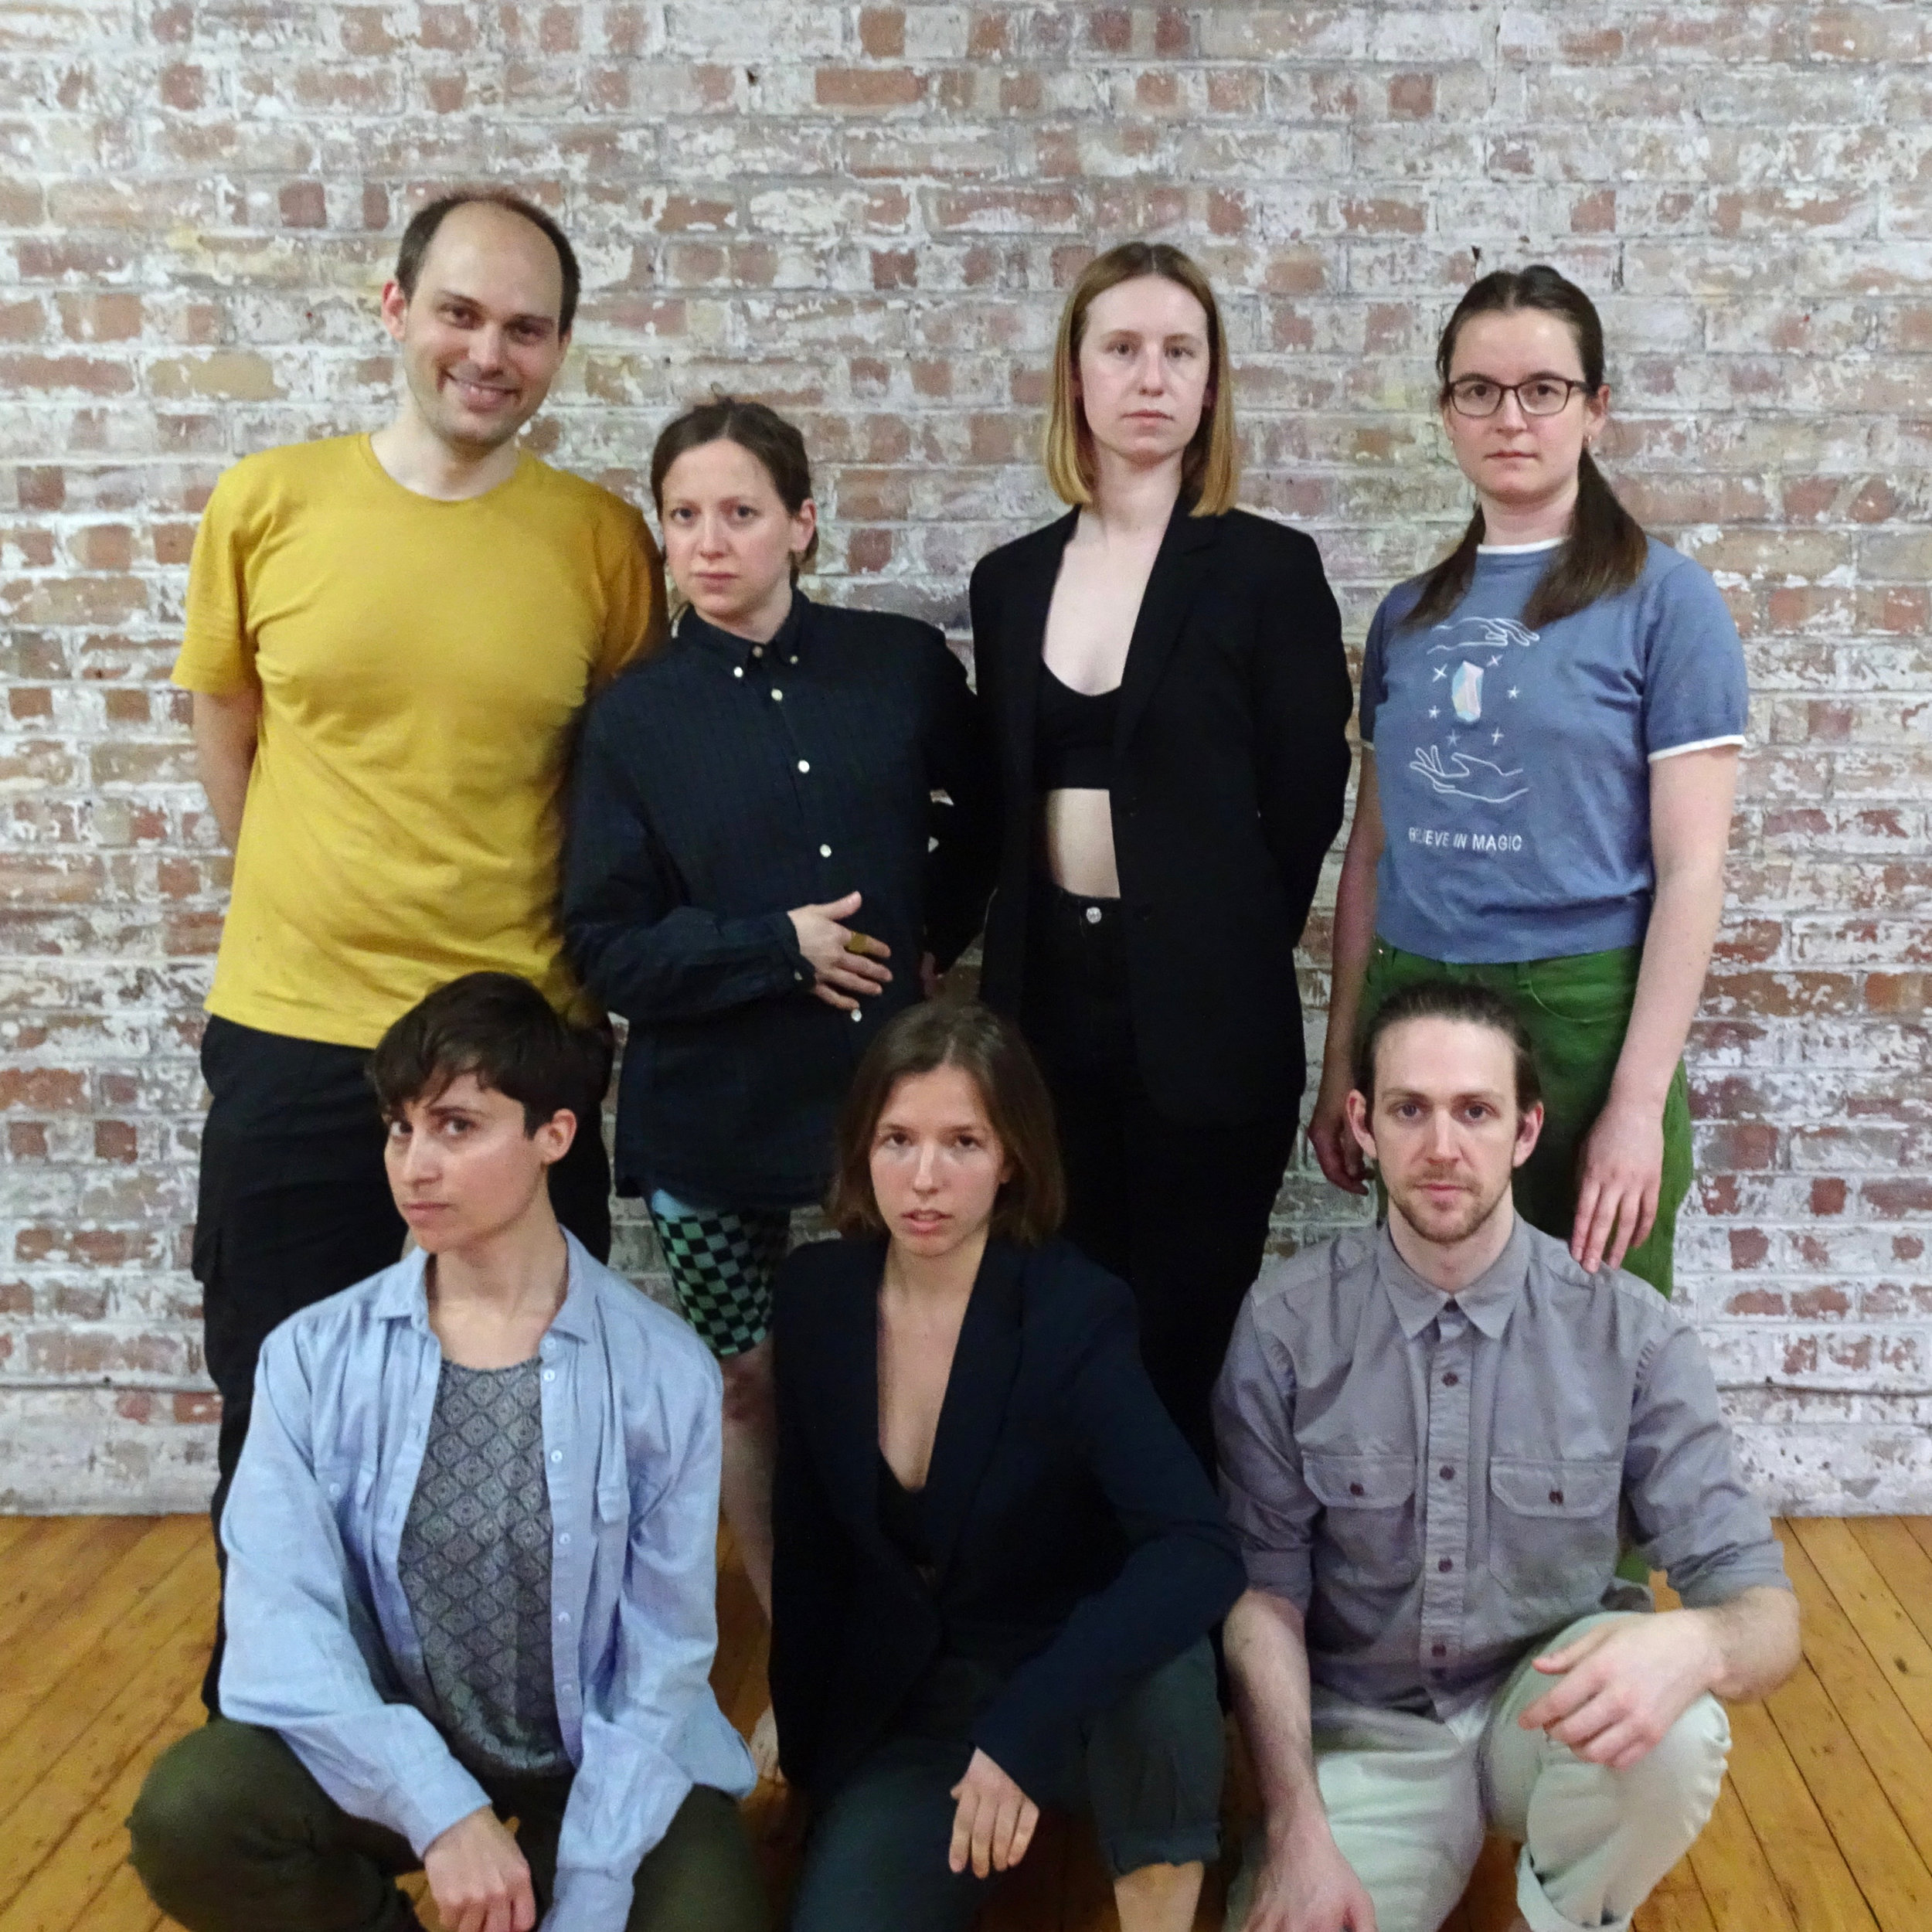 Roadhouse #1, 18 May 2019, Chisenhale Dance Space, London. Clockwise from top left: Michael Picknett (technician), Stephanie McMann, Hannah Parsons, Eleanor Sikorski, Lewys Holt, Lorea Burge Badiola, Charlie Ashwell (writer). Photo by Amarnah Ufuoma Amuludun.